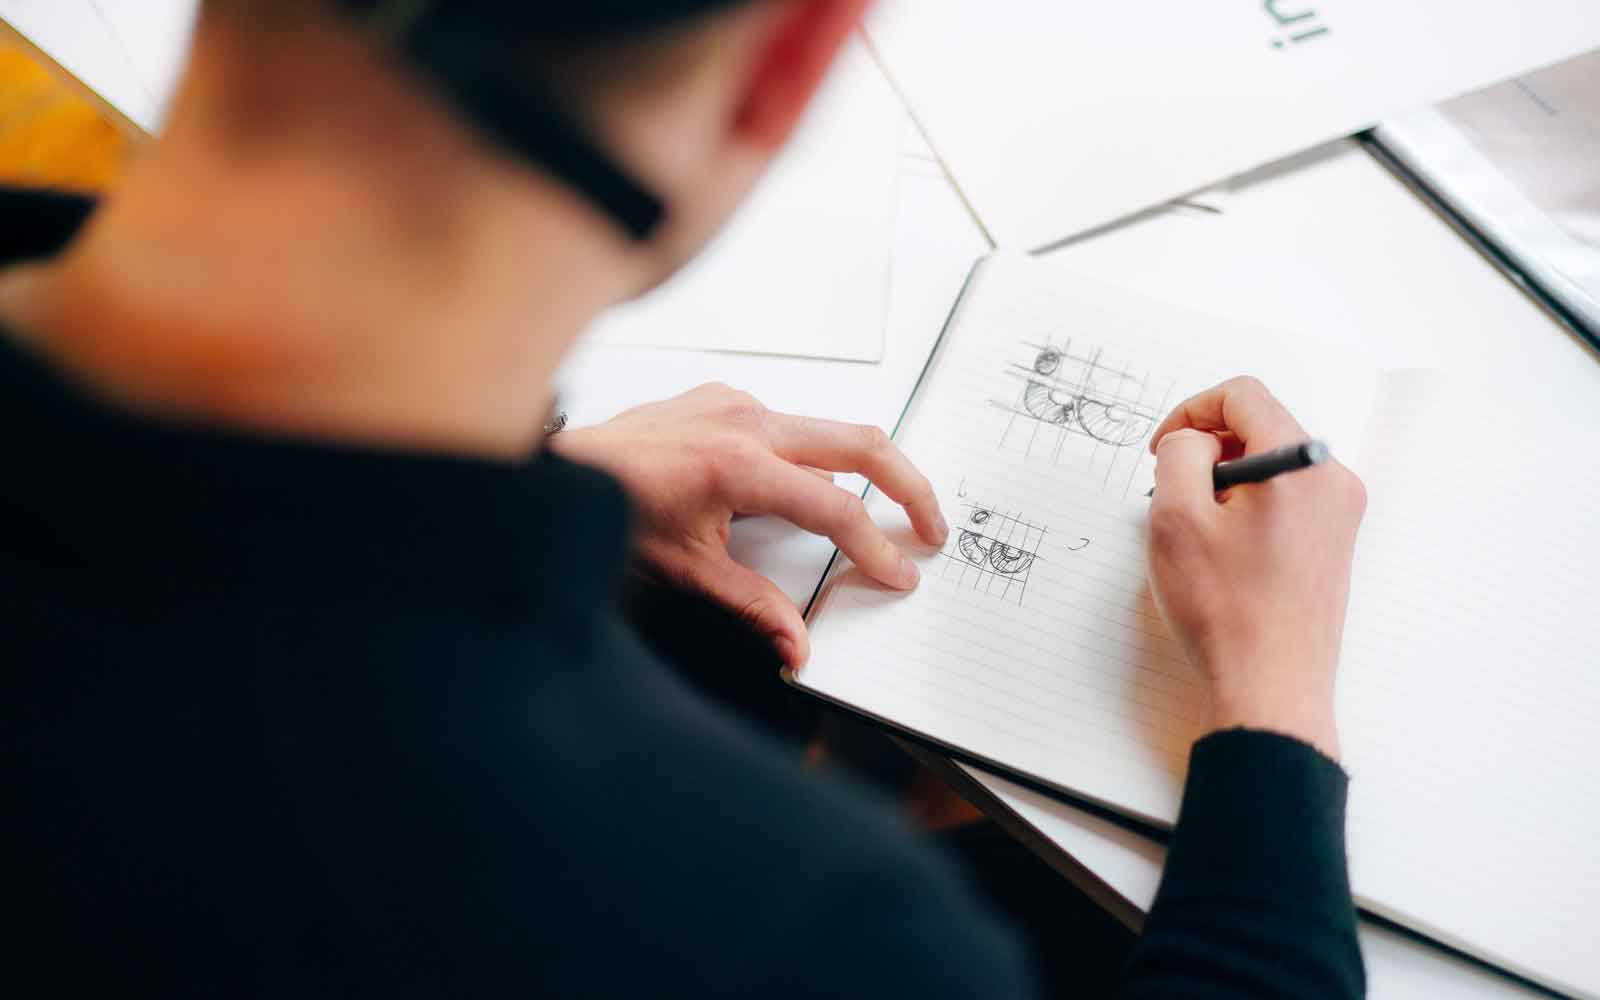 Student sketching in notebook